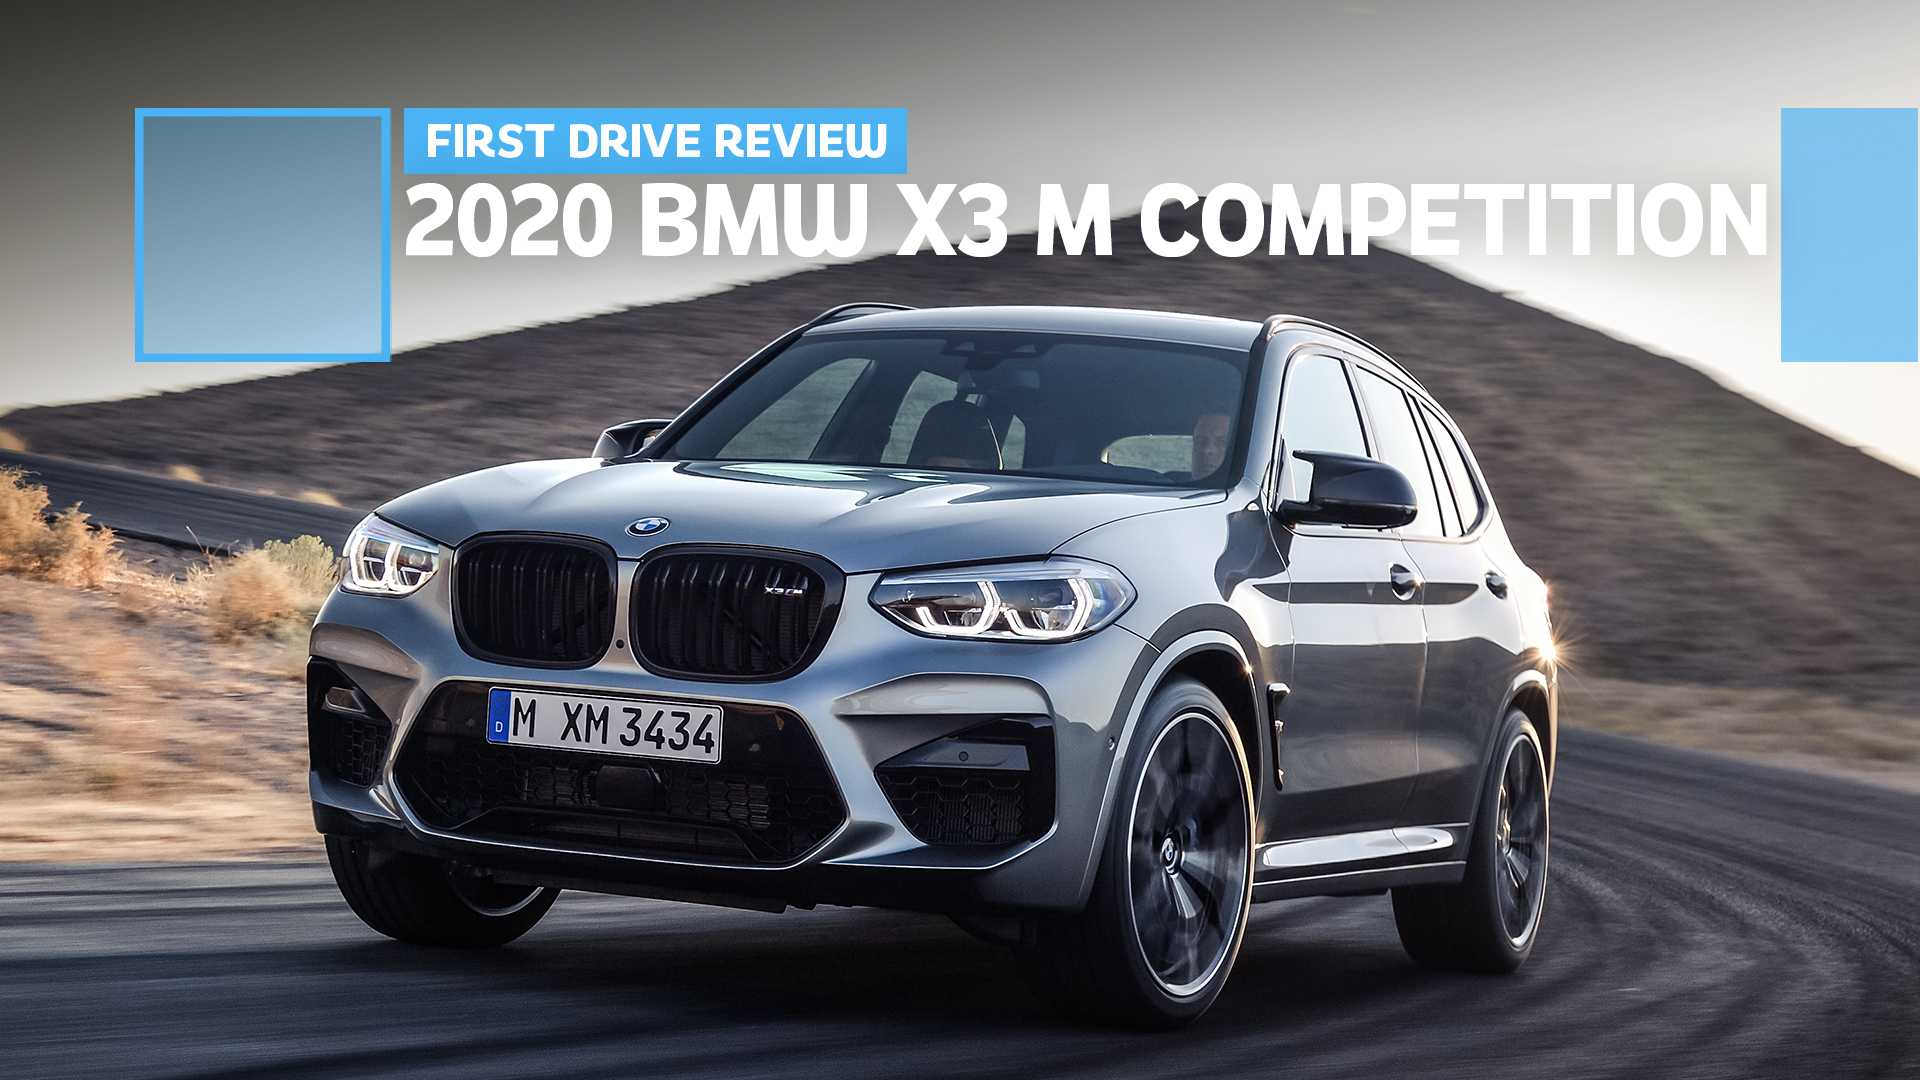 2020 Bmw X3 M Competition First Drive Worthy Of The Badge